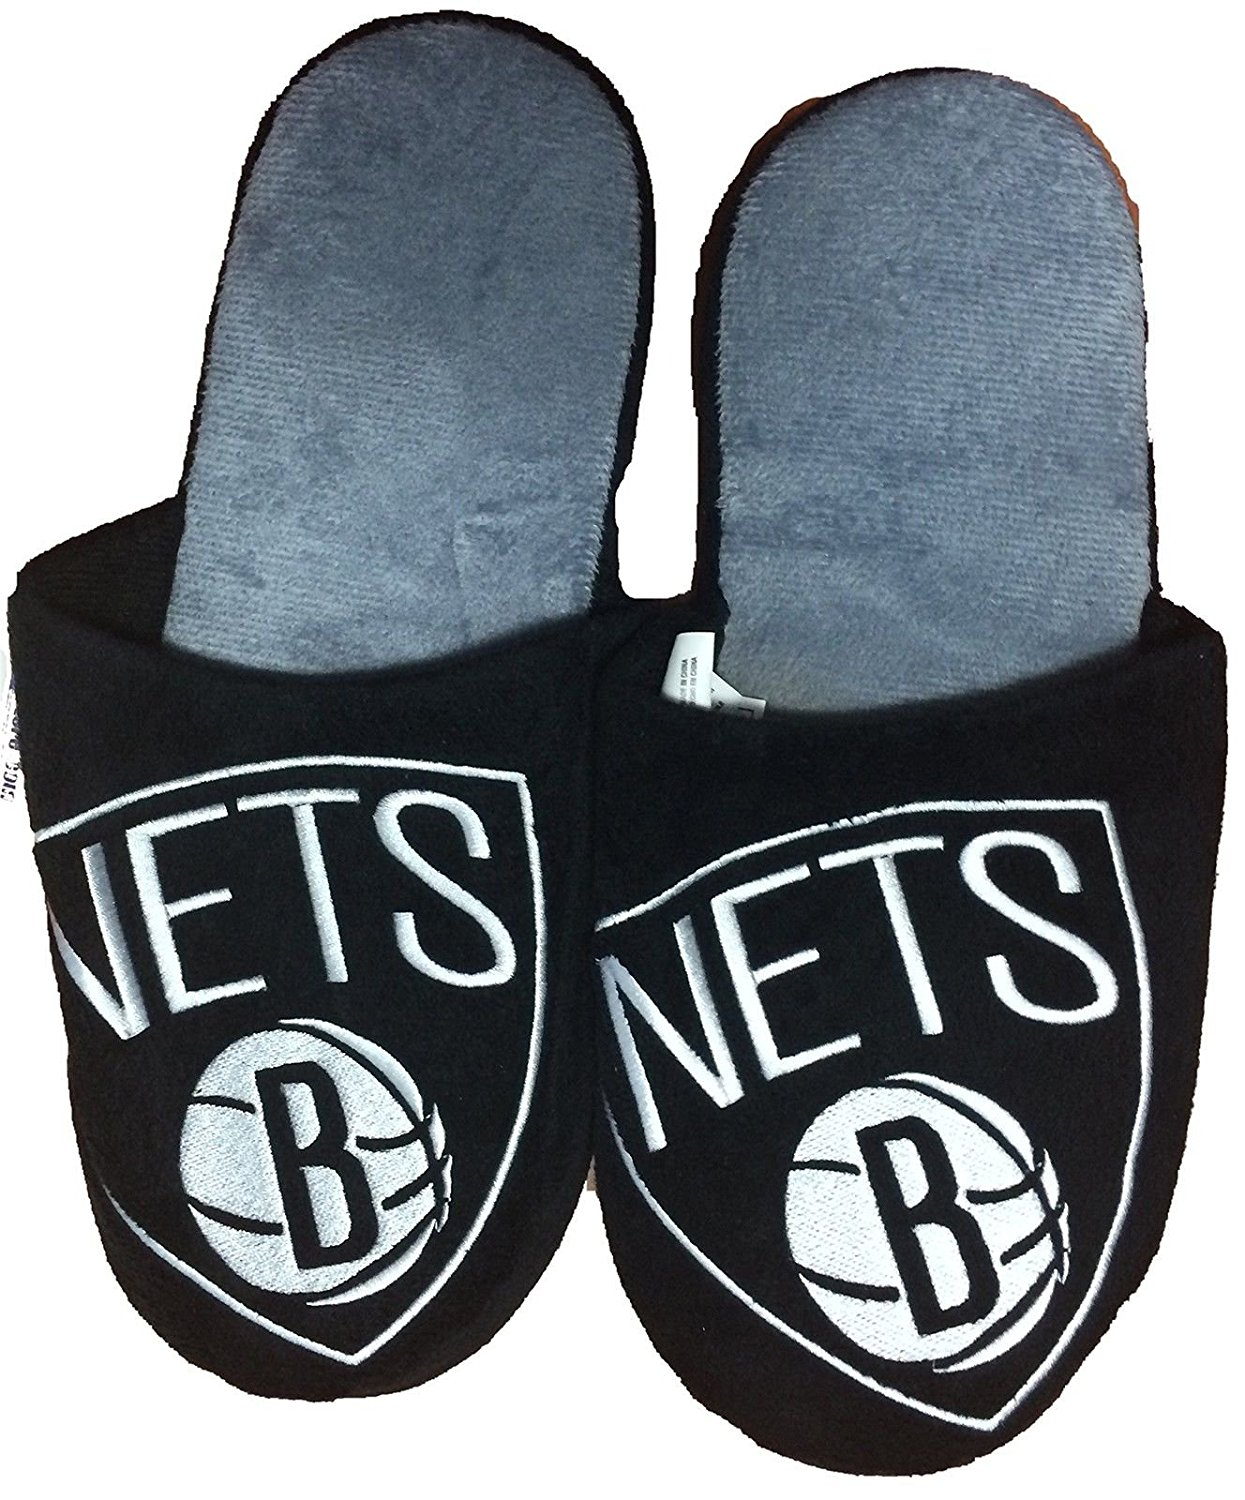 Brooklyn Nets Men's Team Logo Slippers Black (Medium (9-10)), Officially Licensed Product By NBA by